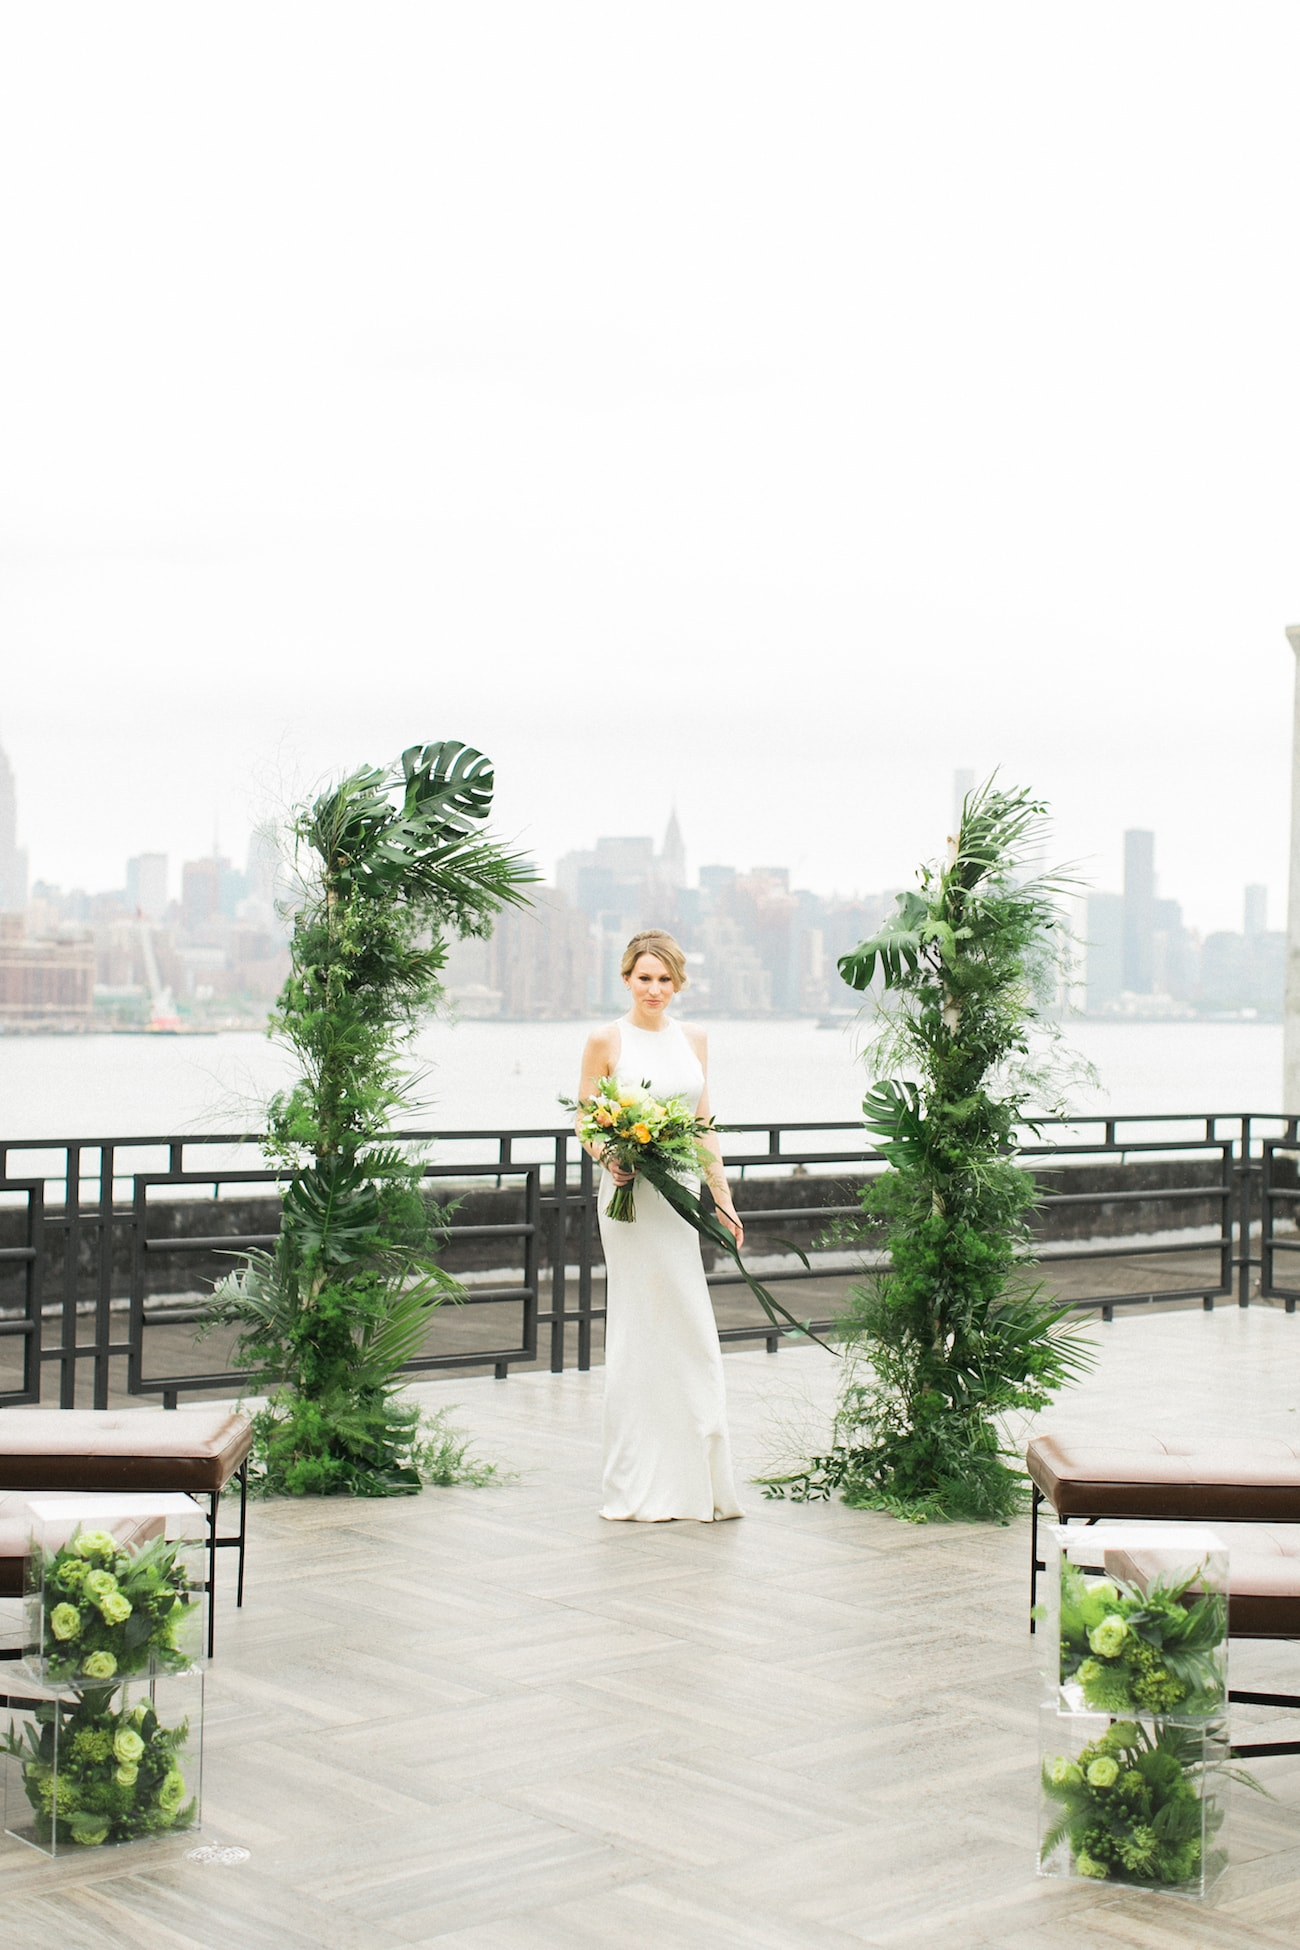 Tropical Greenery Ceremony Arch for City Wedding | Credit: Ruth Eileen Photography